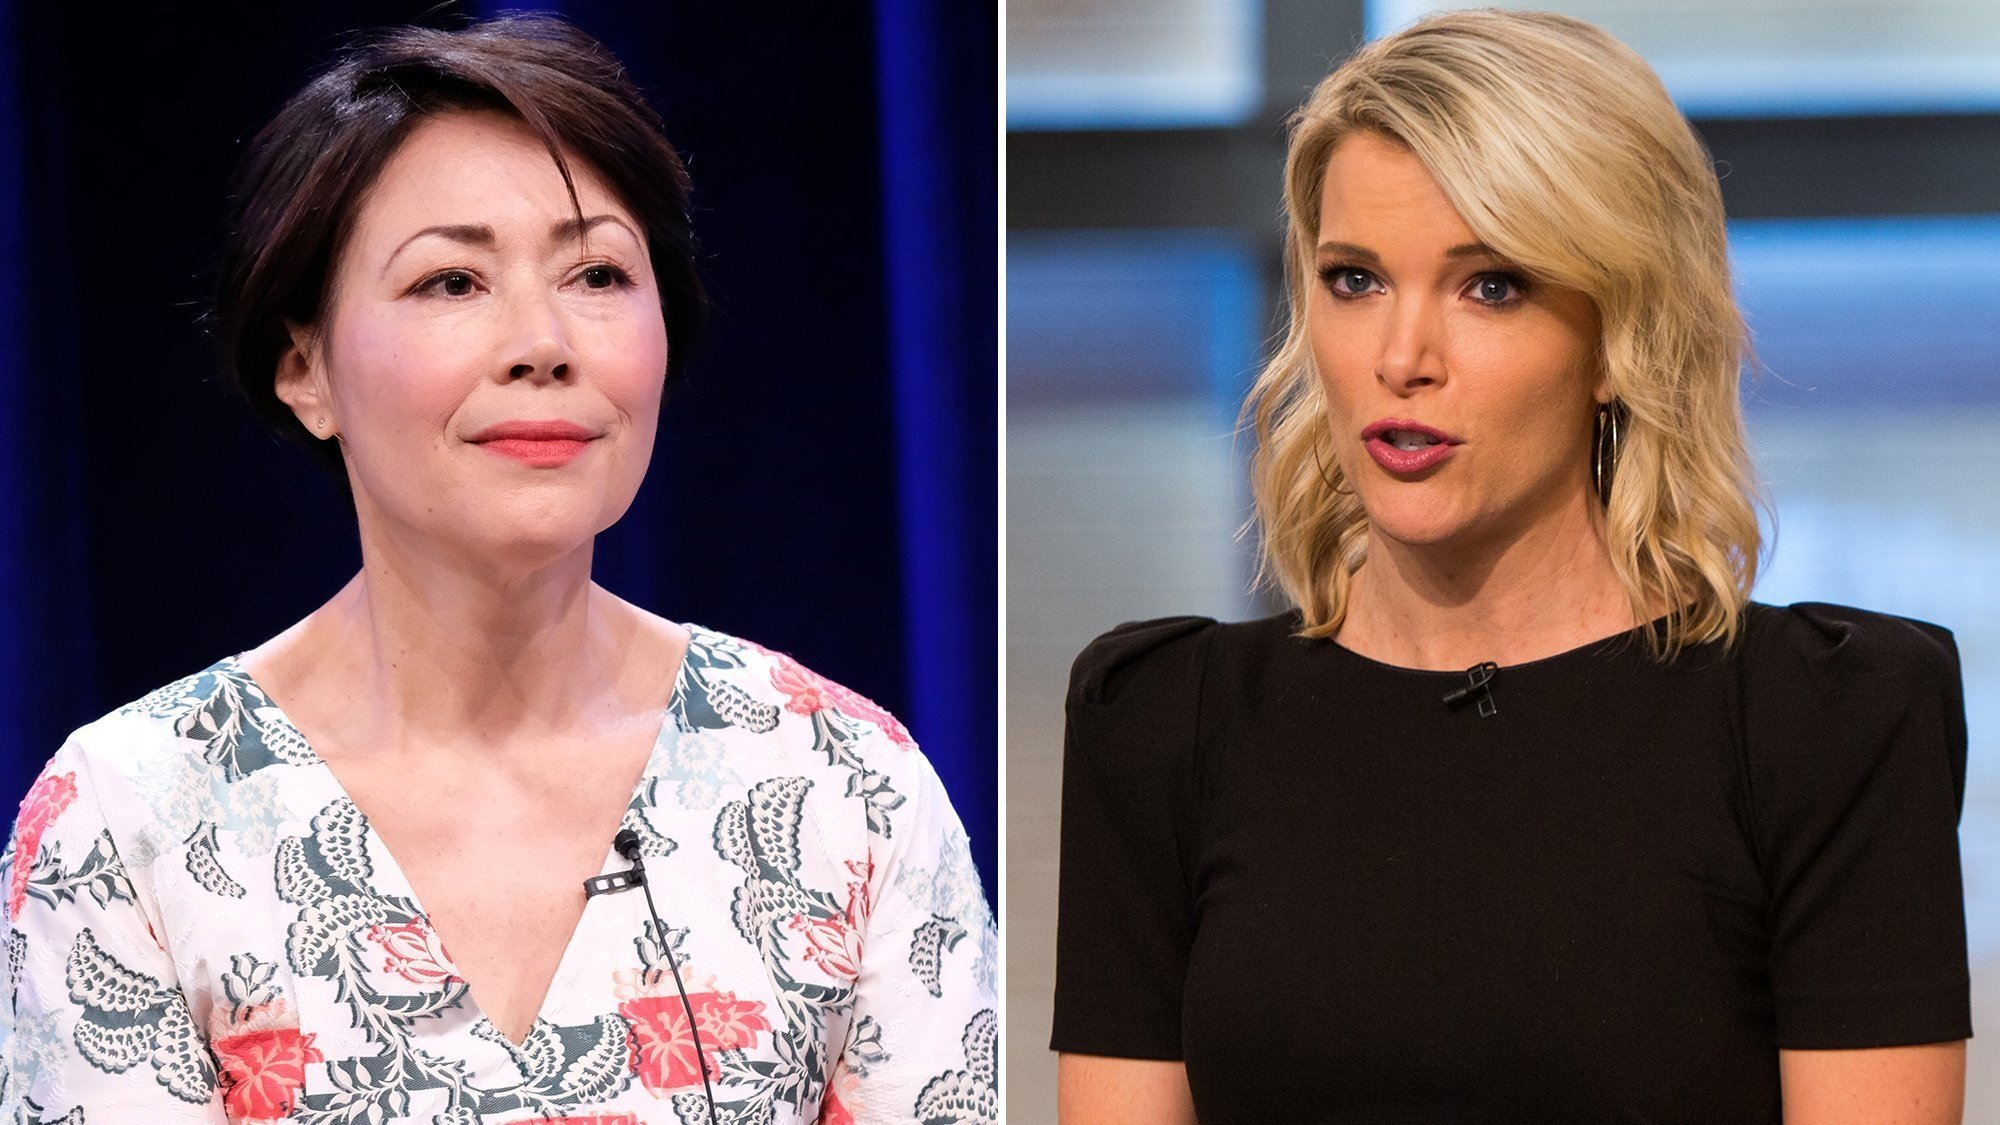 Megyn Kelly Avoids Mention of Jane Fonda in 'Today' Return